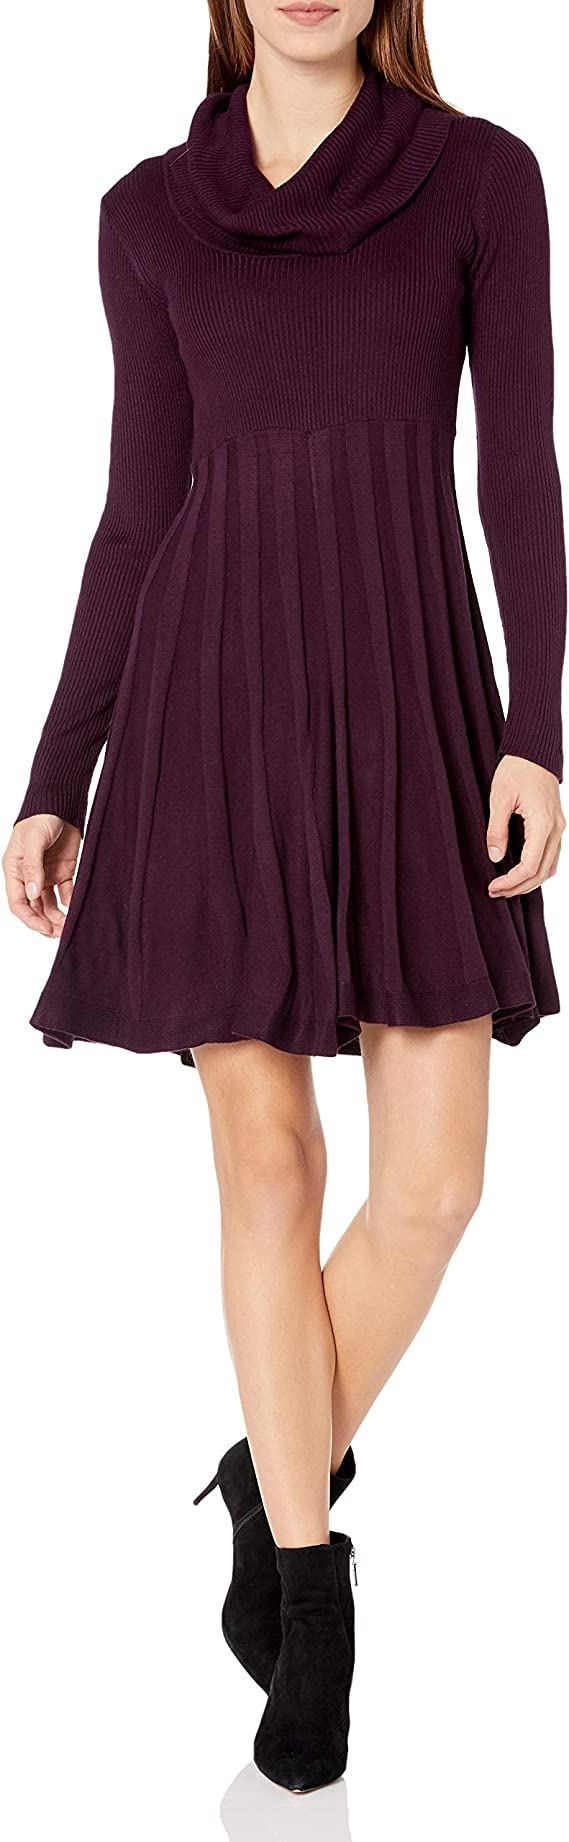 Calvin Klein Women's Long-Sleeve Cowl-Neck Fit & Flare Sweater Dress Cute Sweater Dress for women